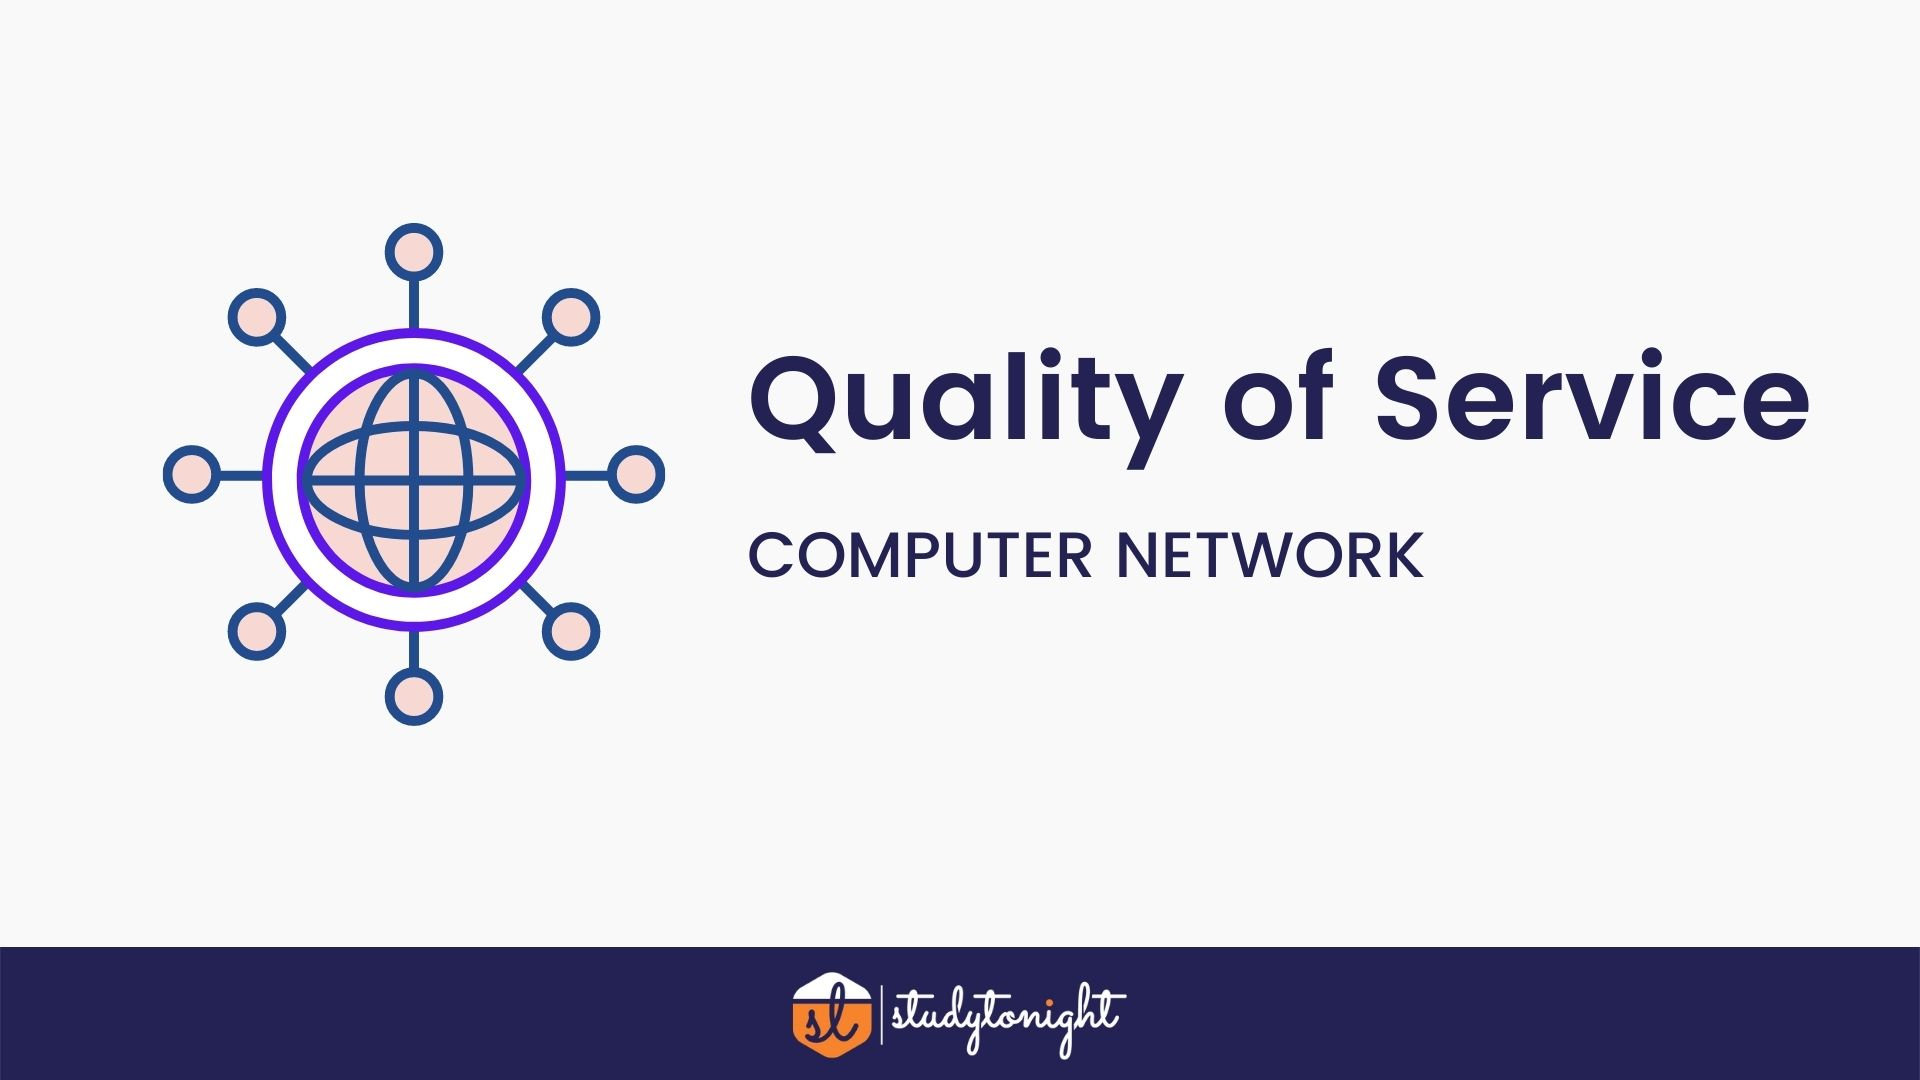 quality of service in computer network